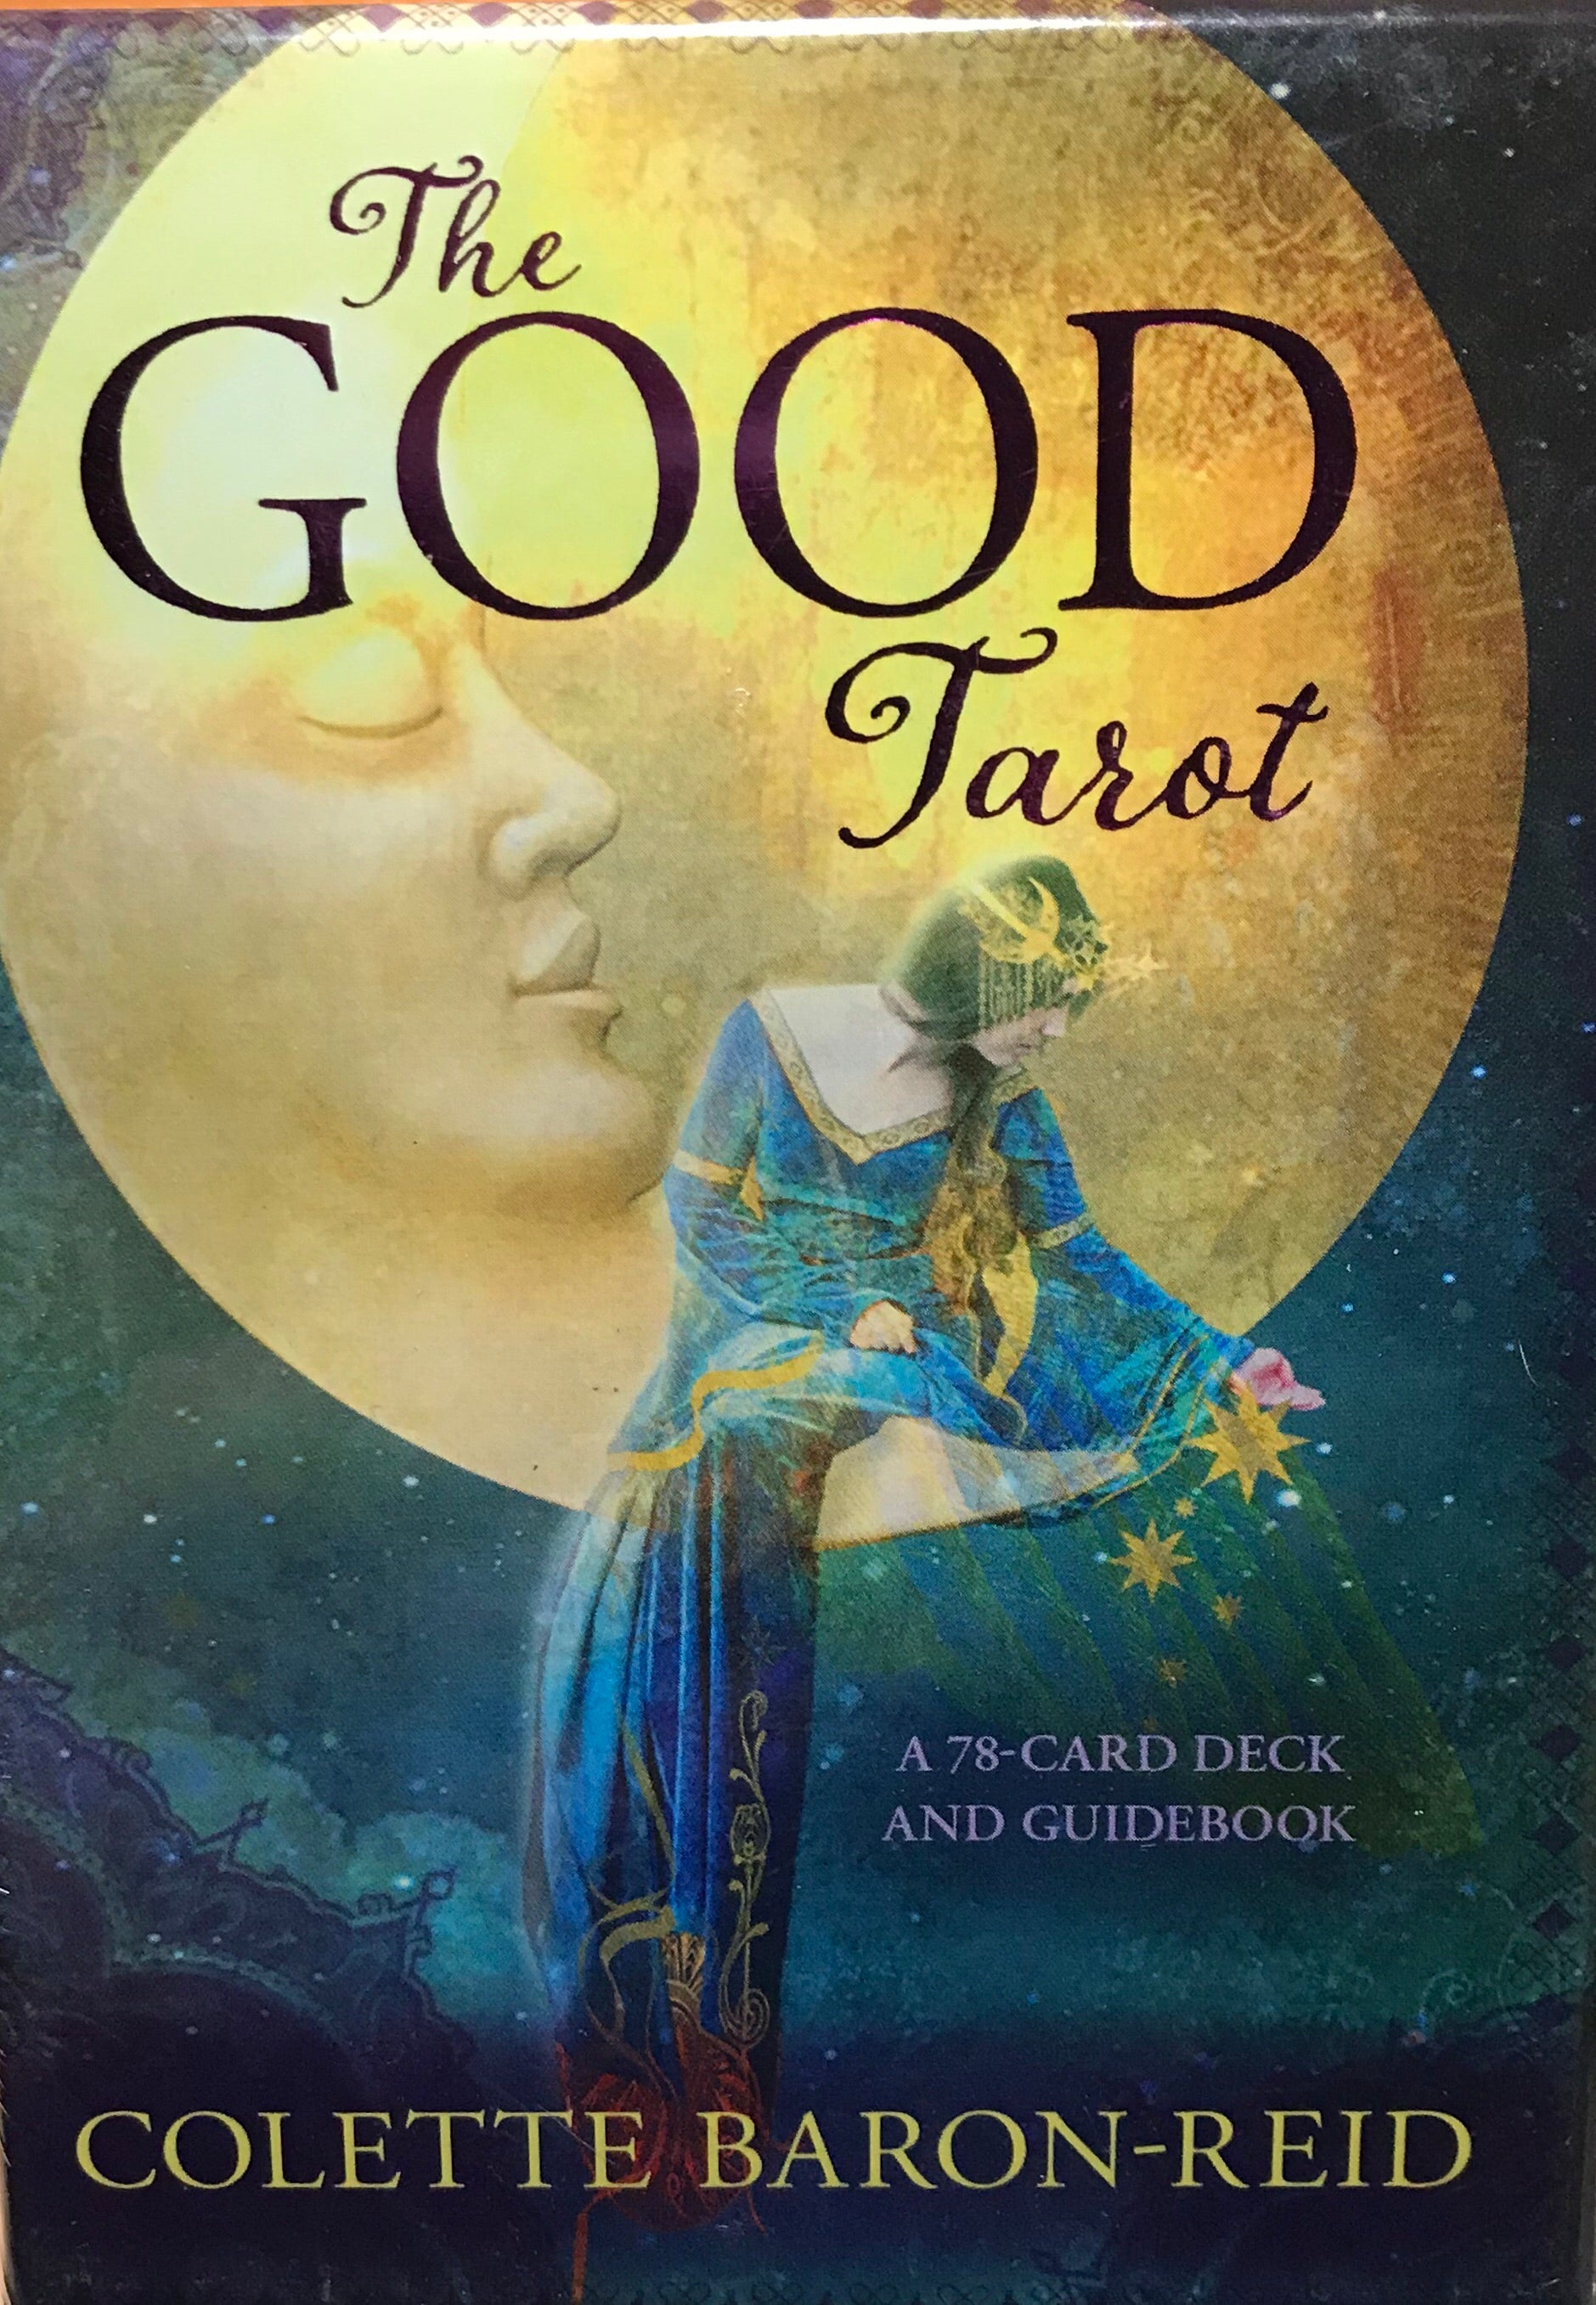 The Good Tarot by Colette Baron-Reid